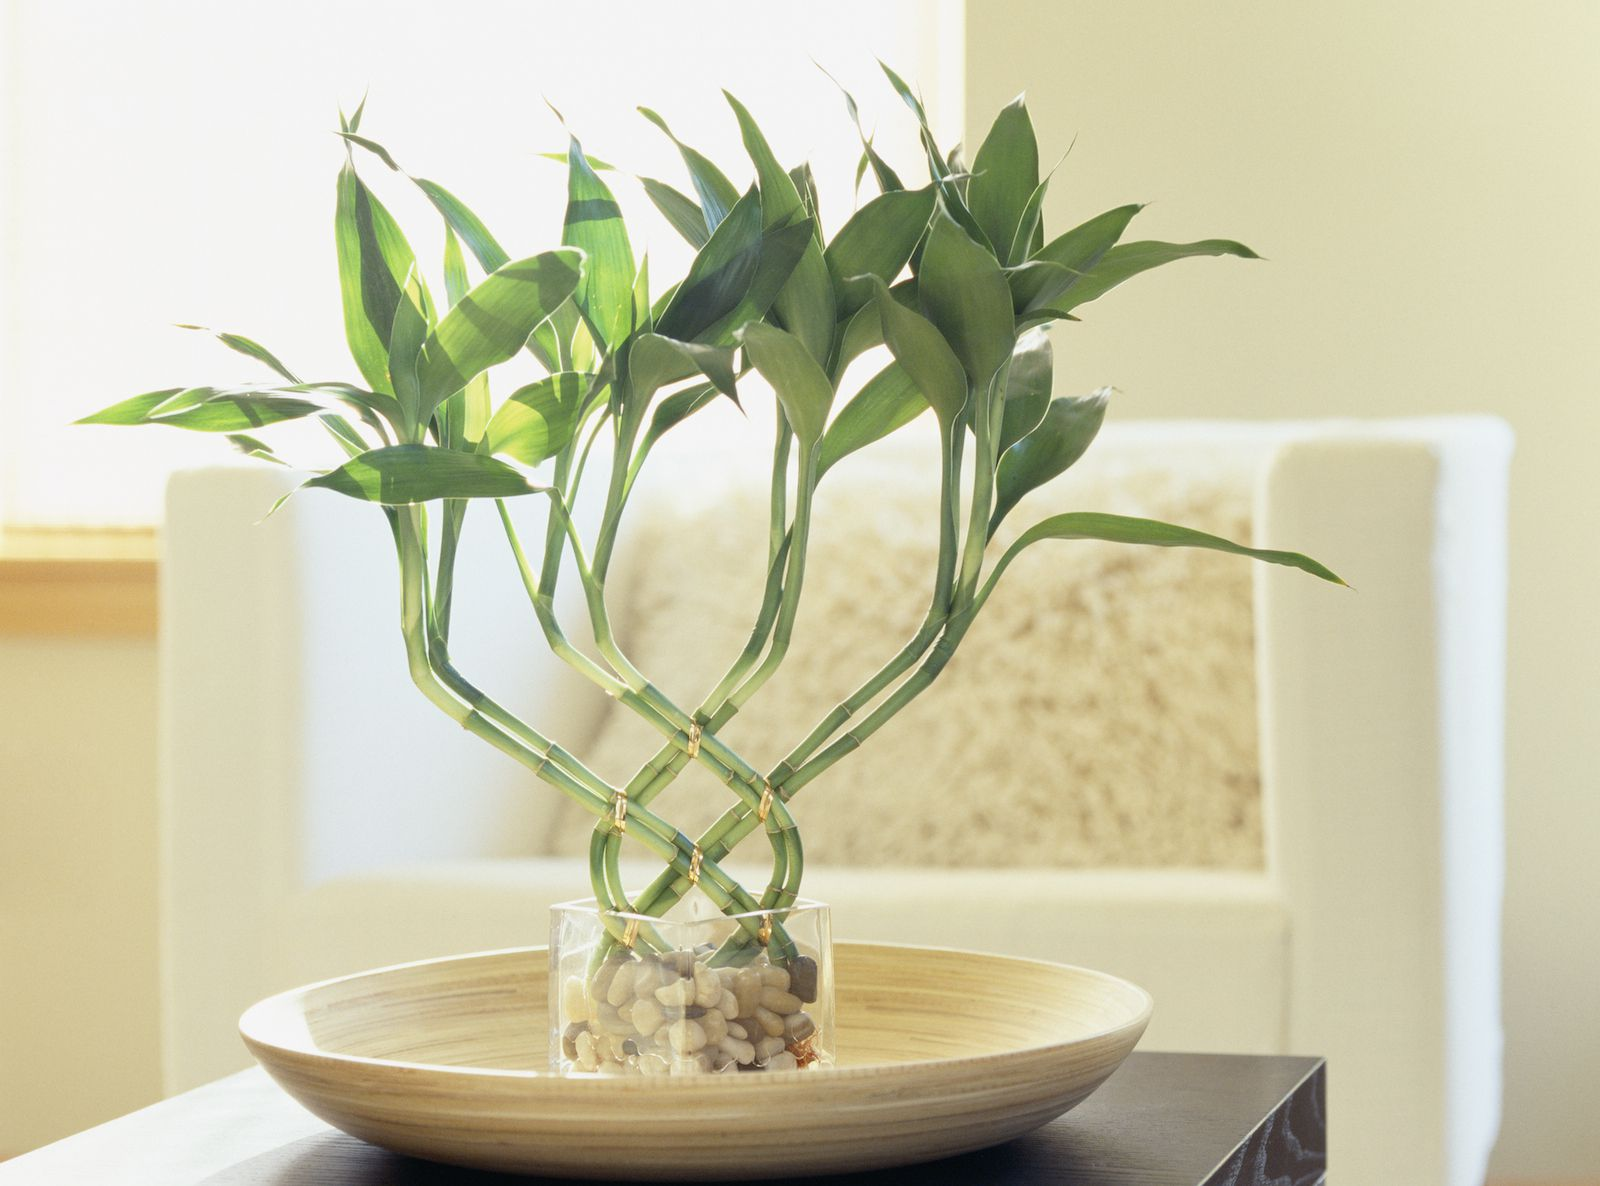 Wohnzimmer Pflanze Feng Shui Lucky Bamboo Meaning And Use For Good Feng Shui